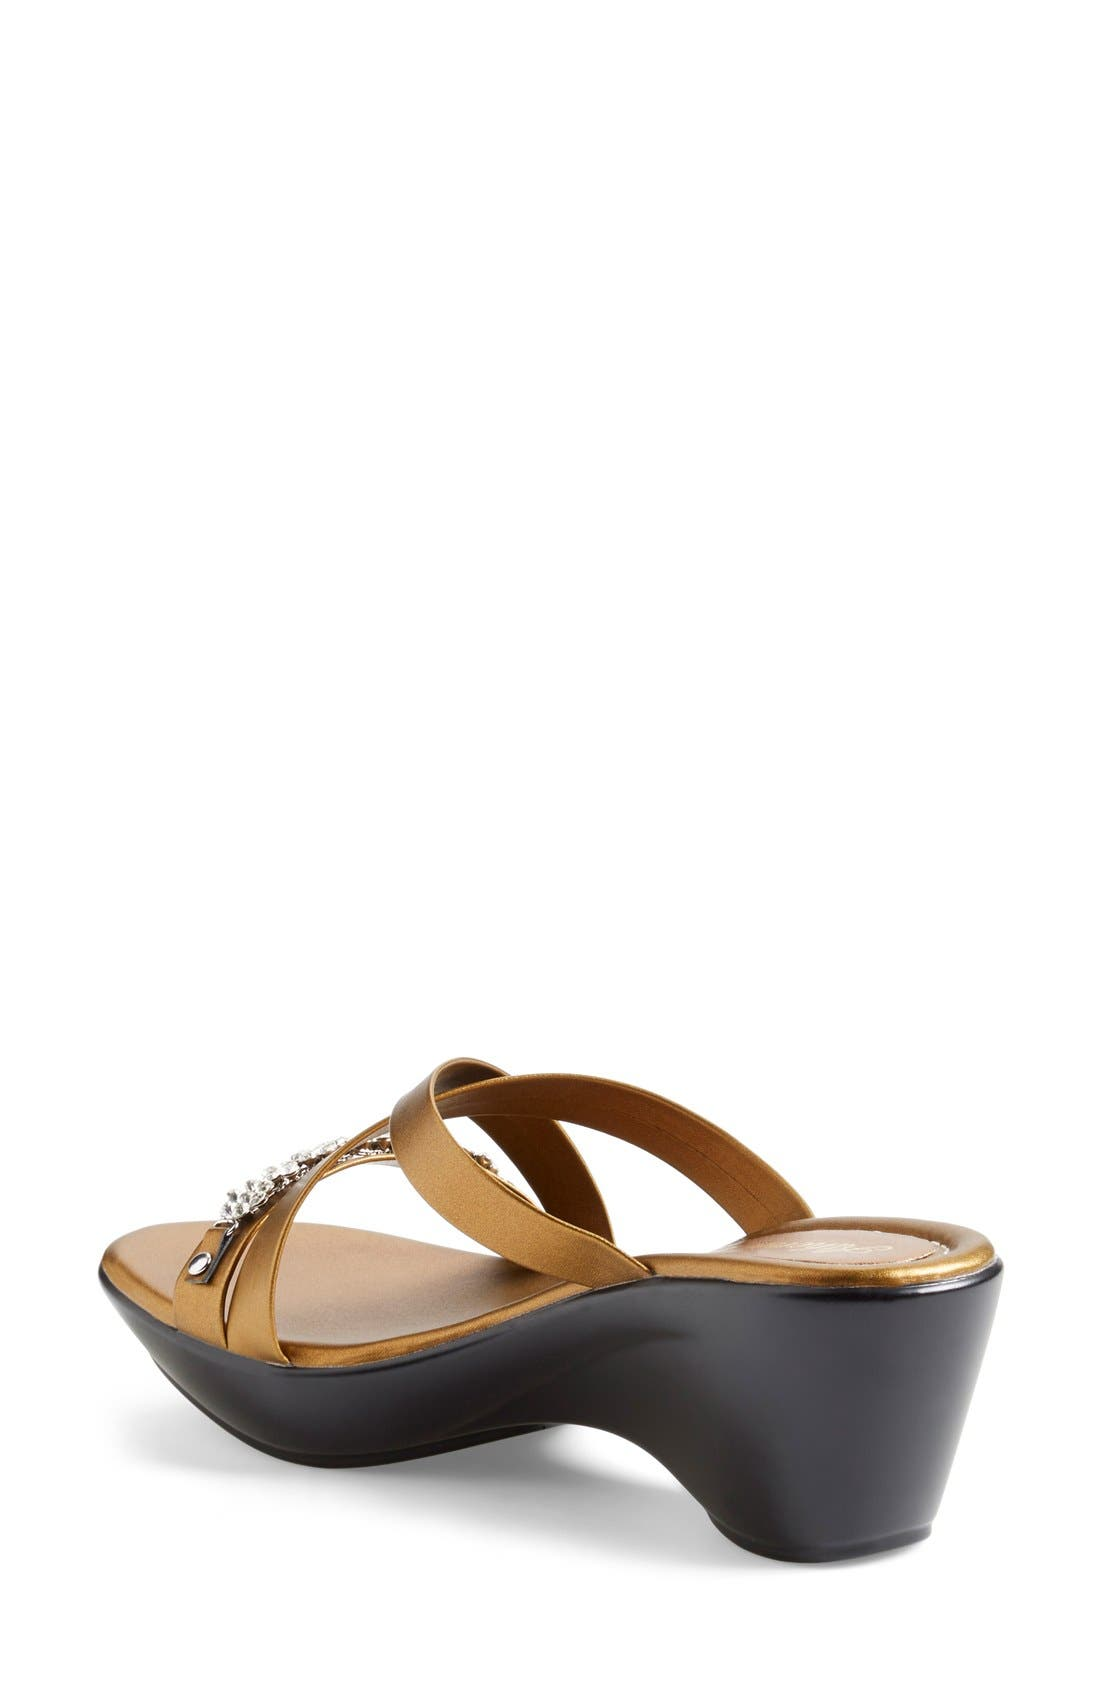 Alternate Image 2  - Athena Alexander 'Tangie' Crystal Embellished Wedge Sandal (Women)